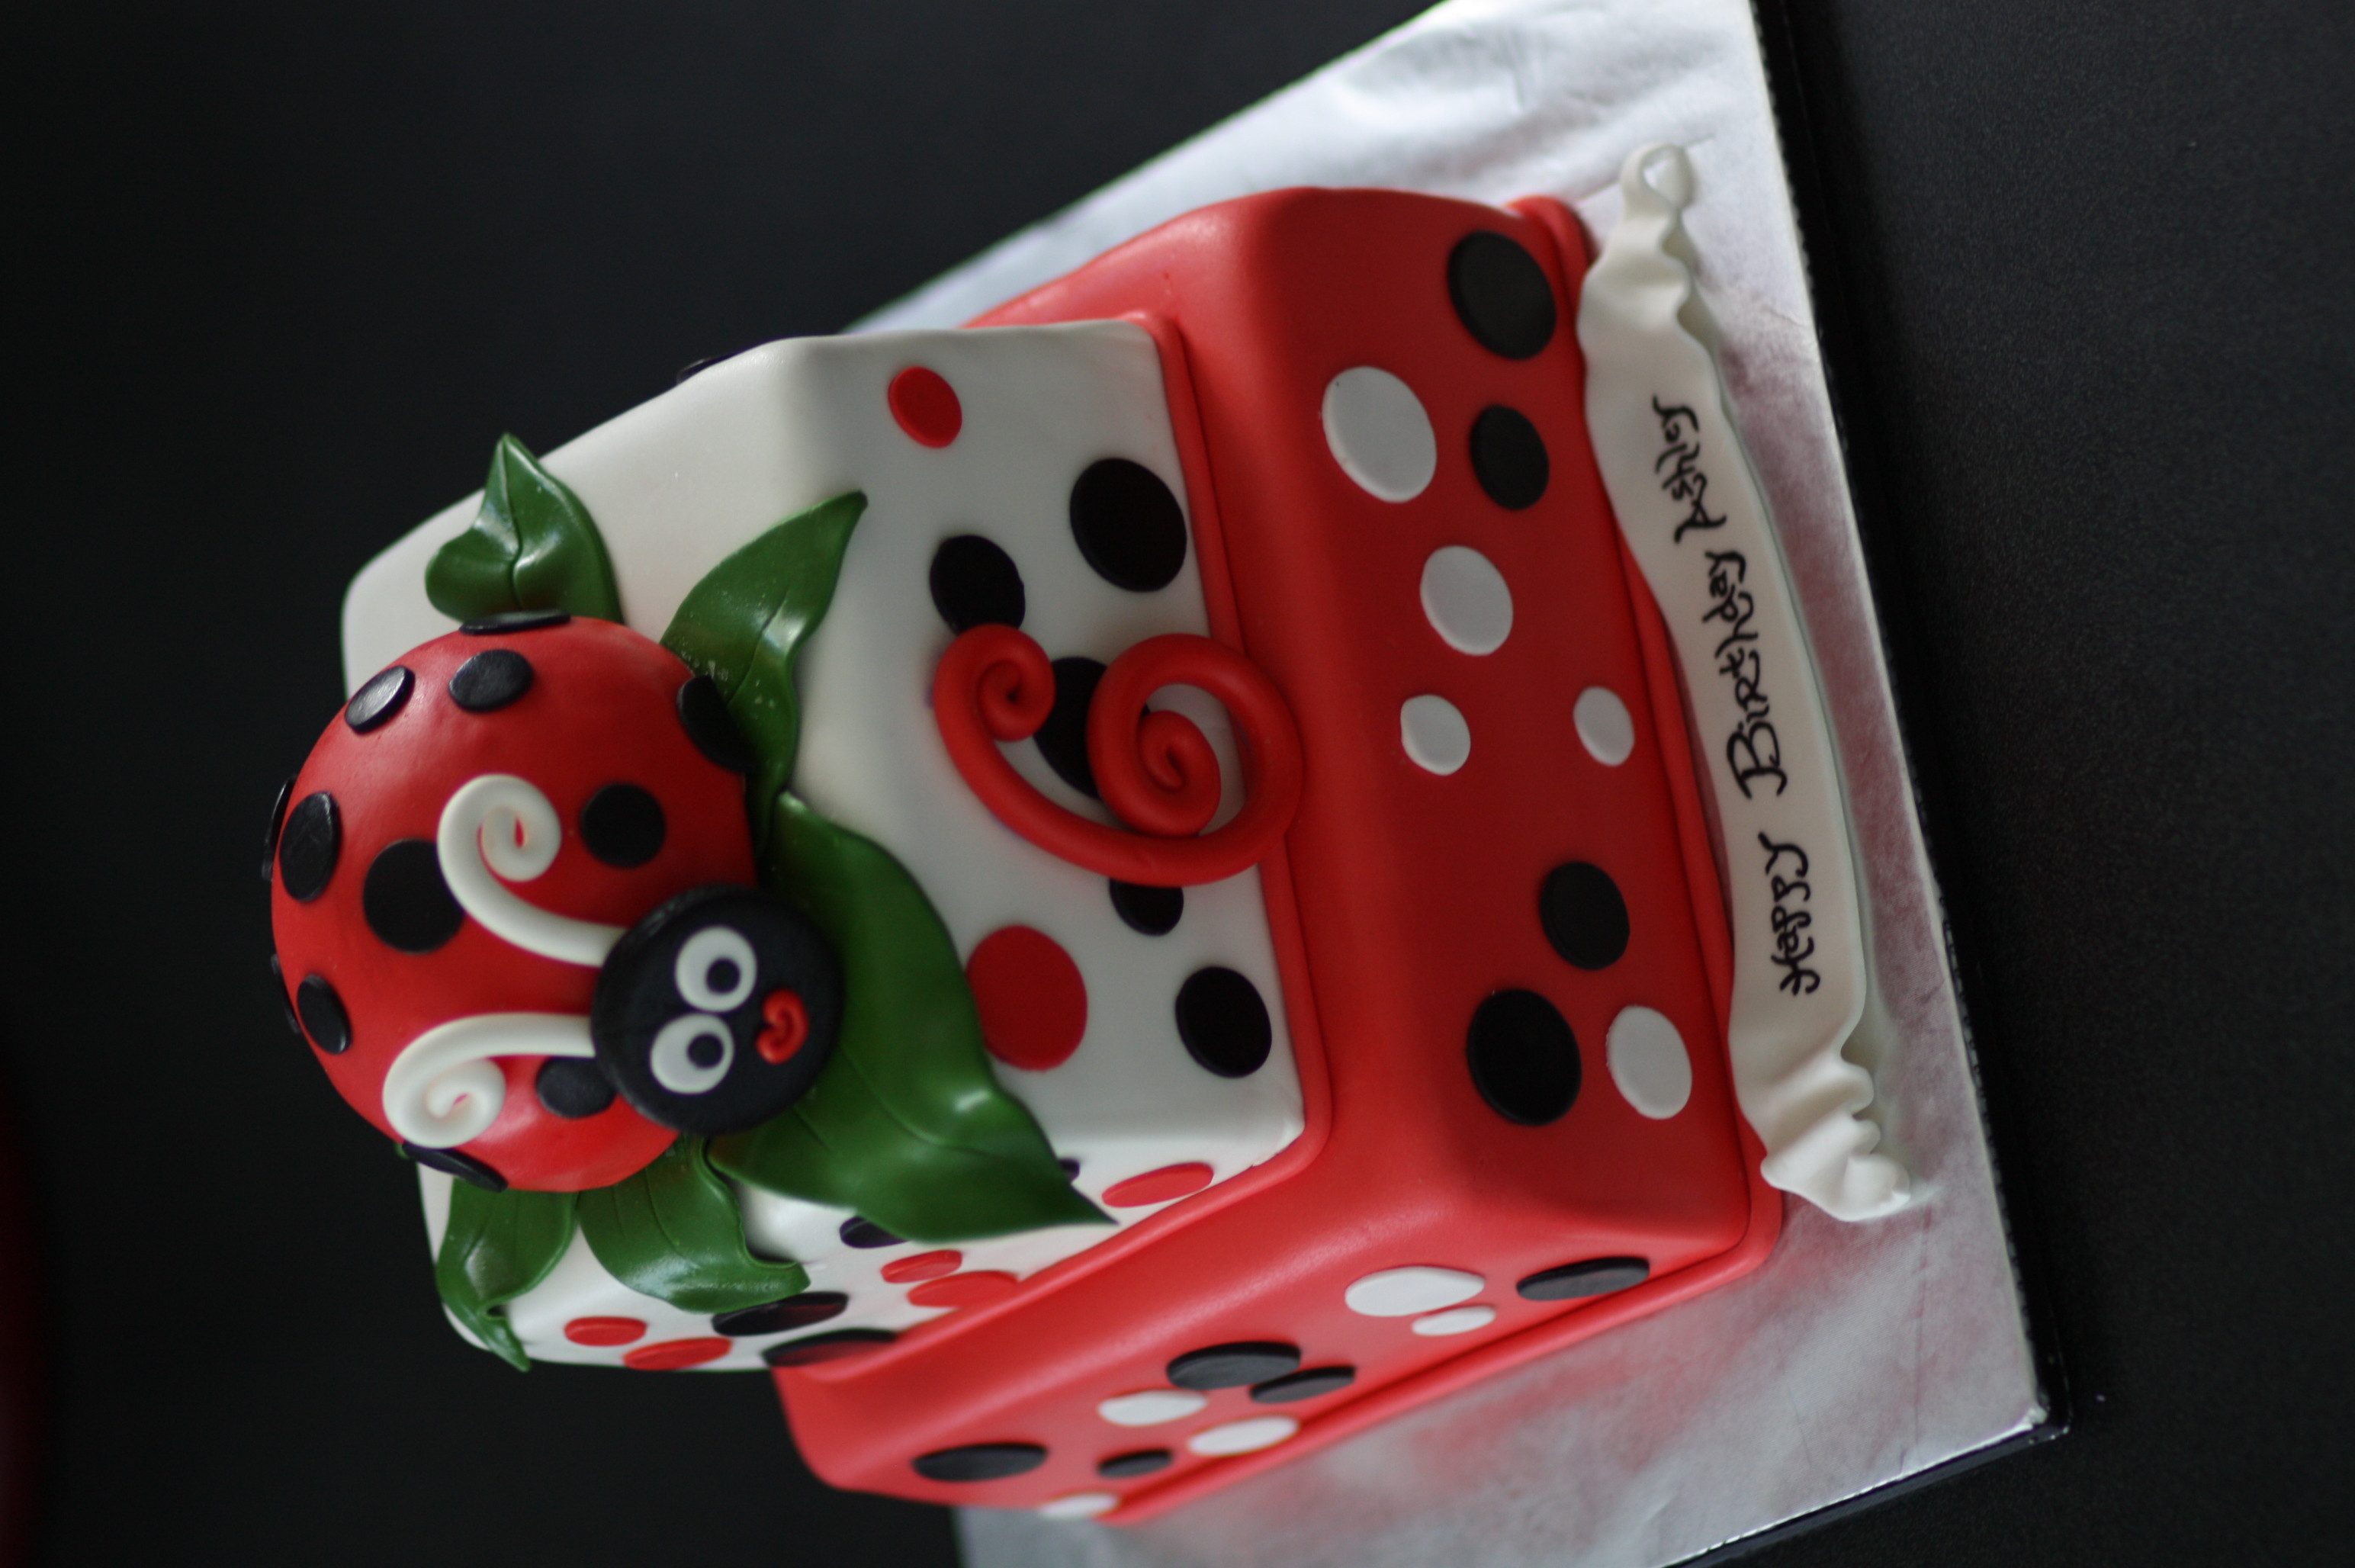 Best ideas about Ladybug Birthday Cake . Save or Pin cakes cupcakes and jewelry oh my Now.